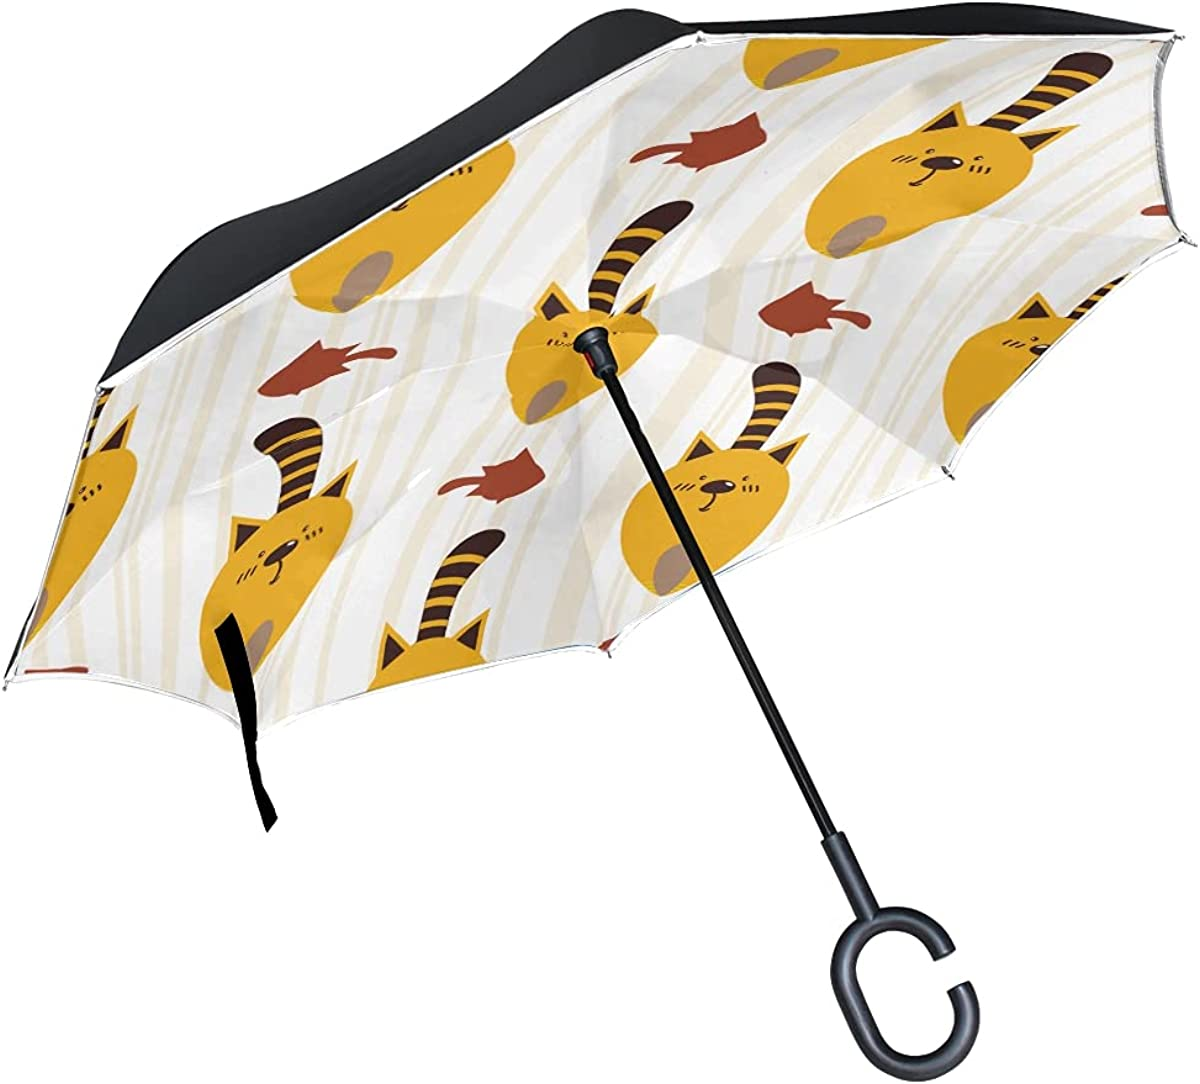 Inverted Umbrella Pattern Cartoon 2021 new Cats Funny Free shipping on posting reviews Windproof